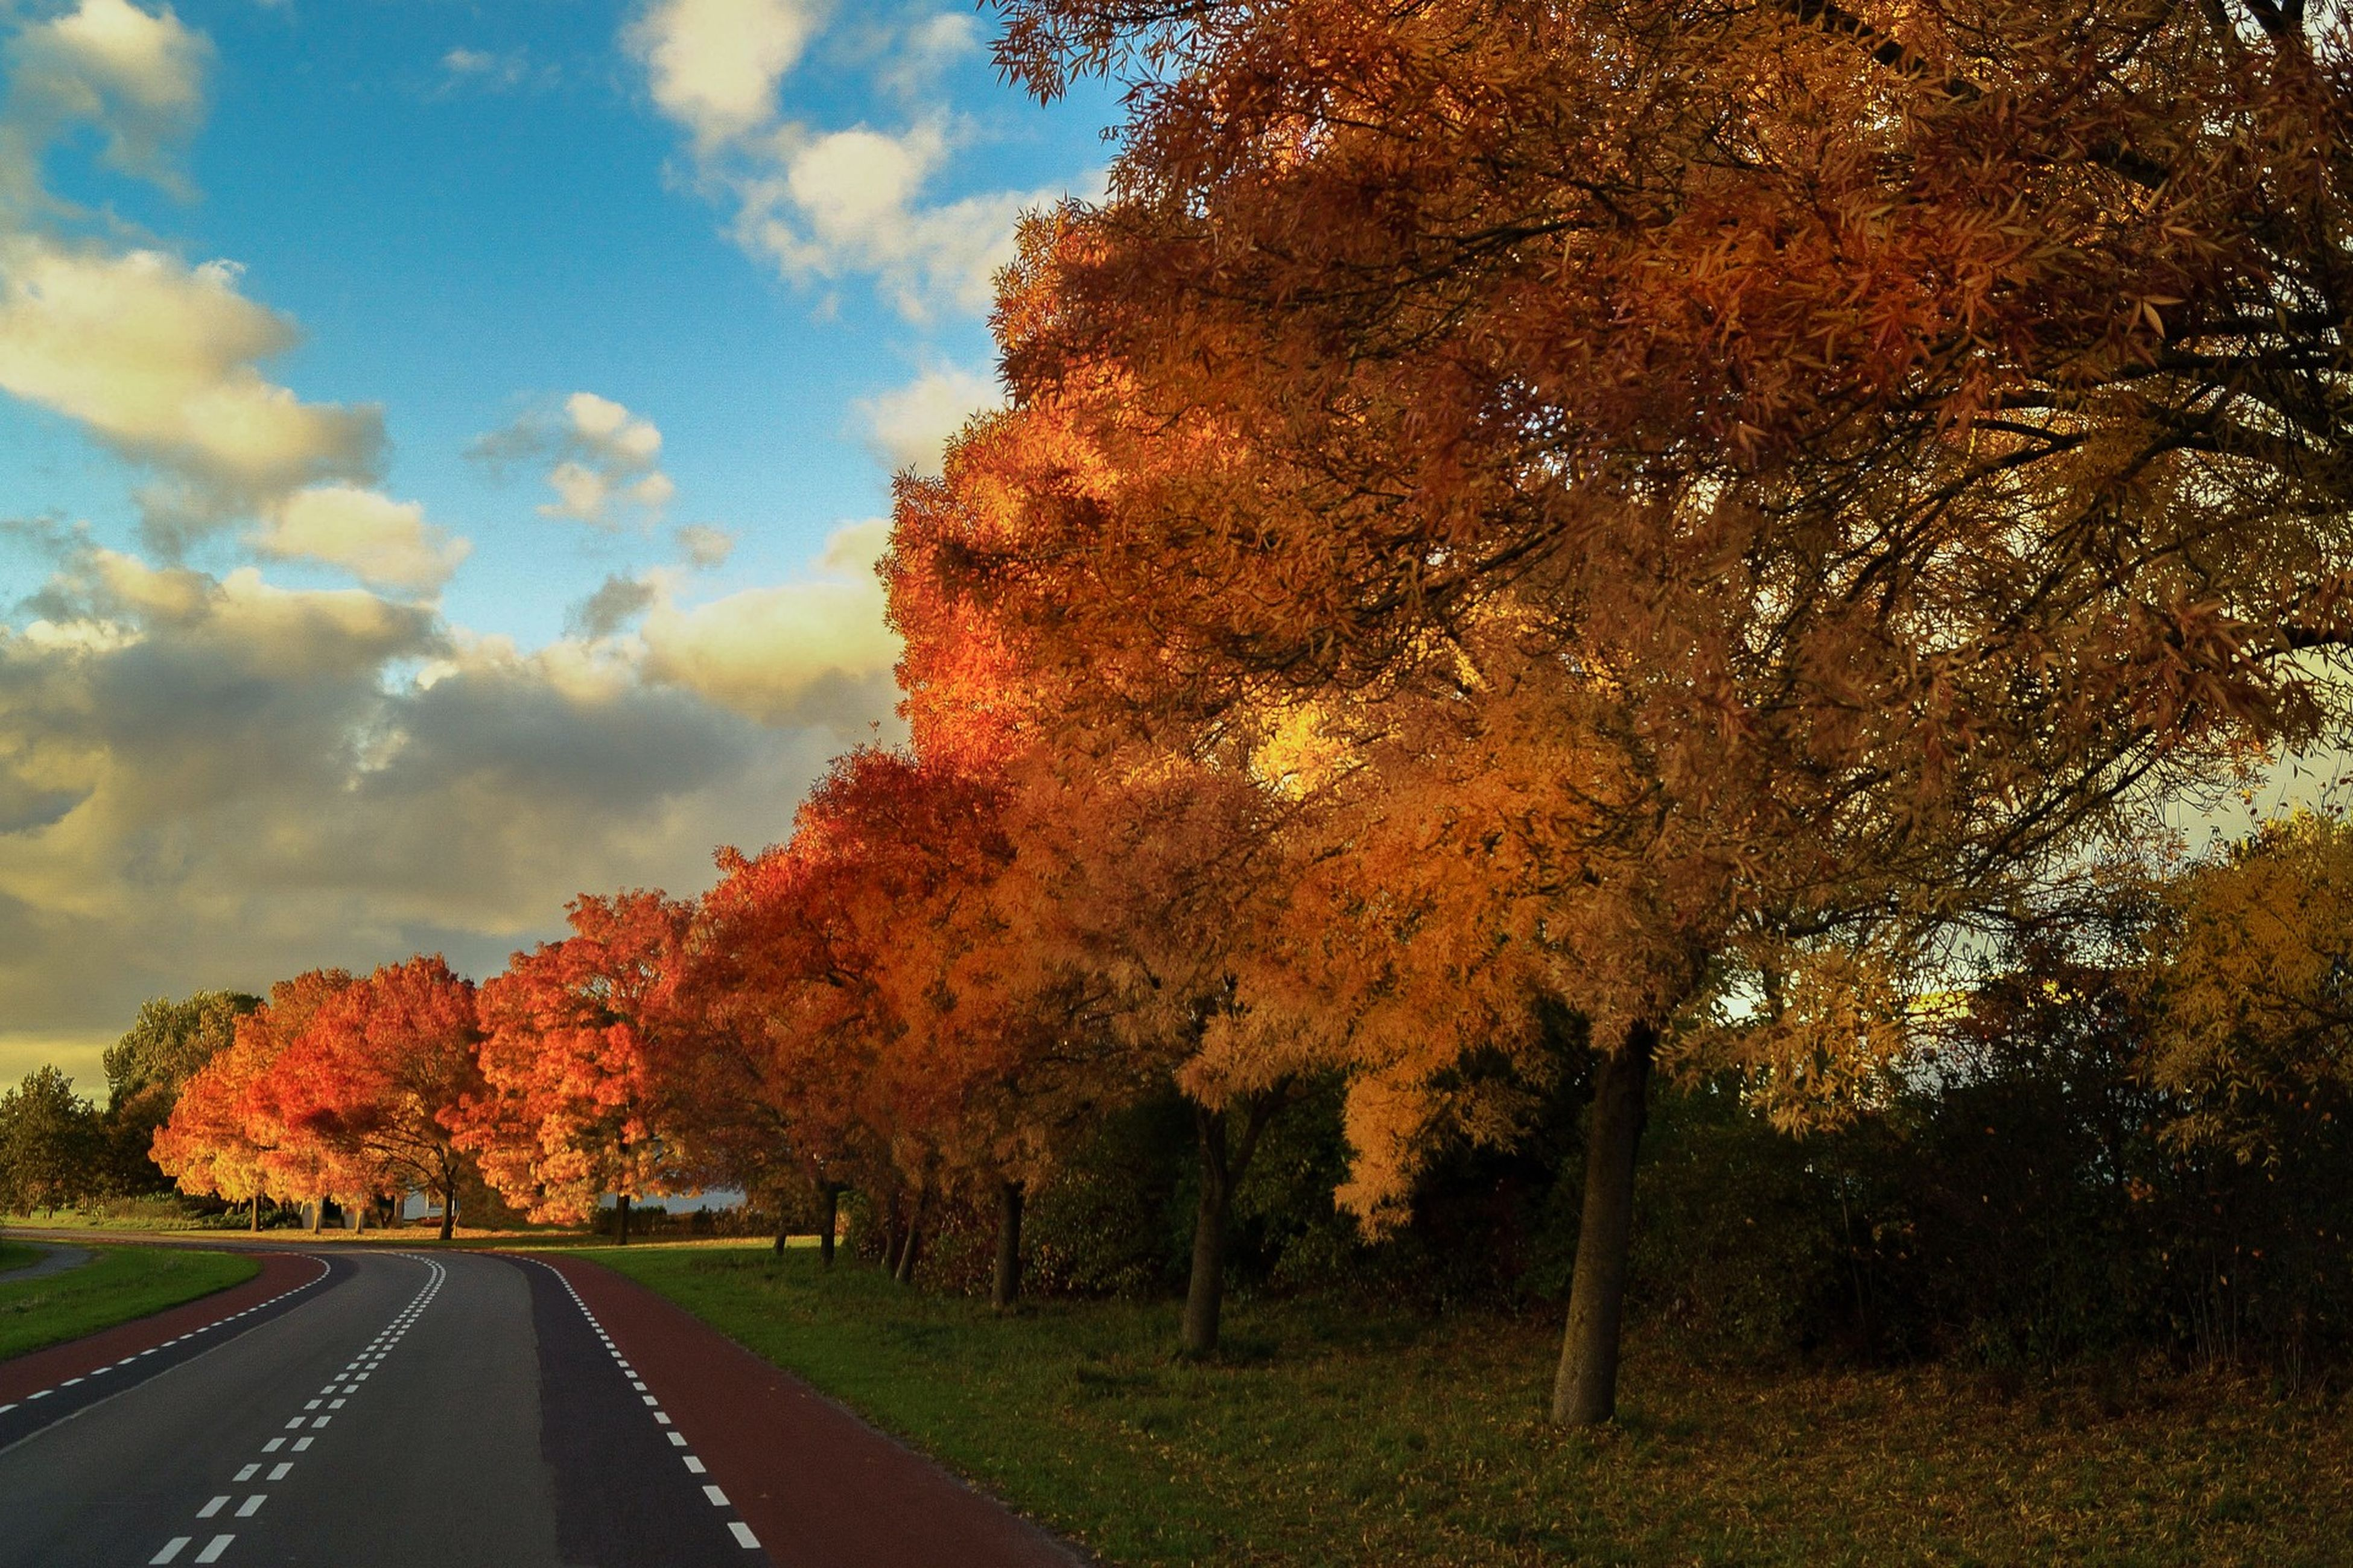 tree, nature, growth, orange color, beauty in nature, red, no people, road, sky, outdoors, day